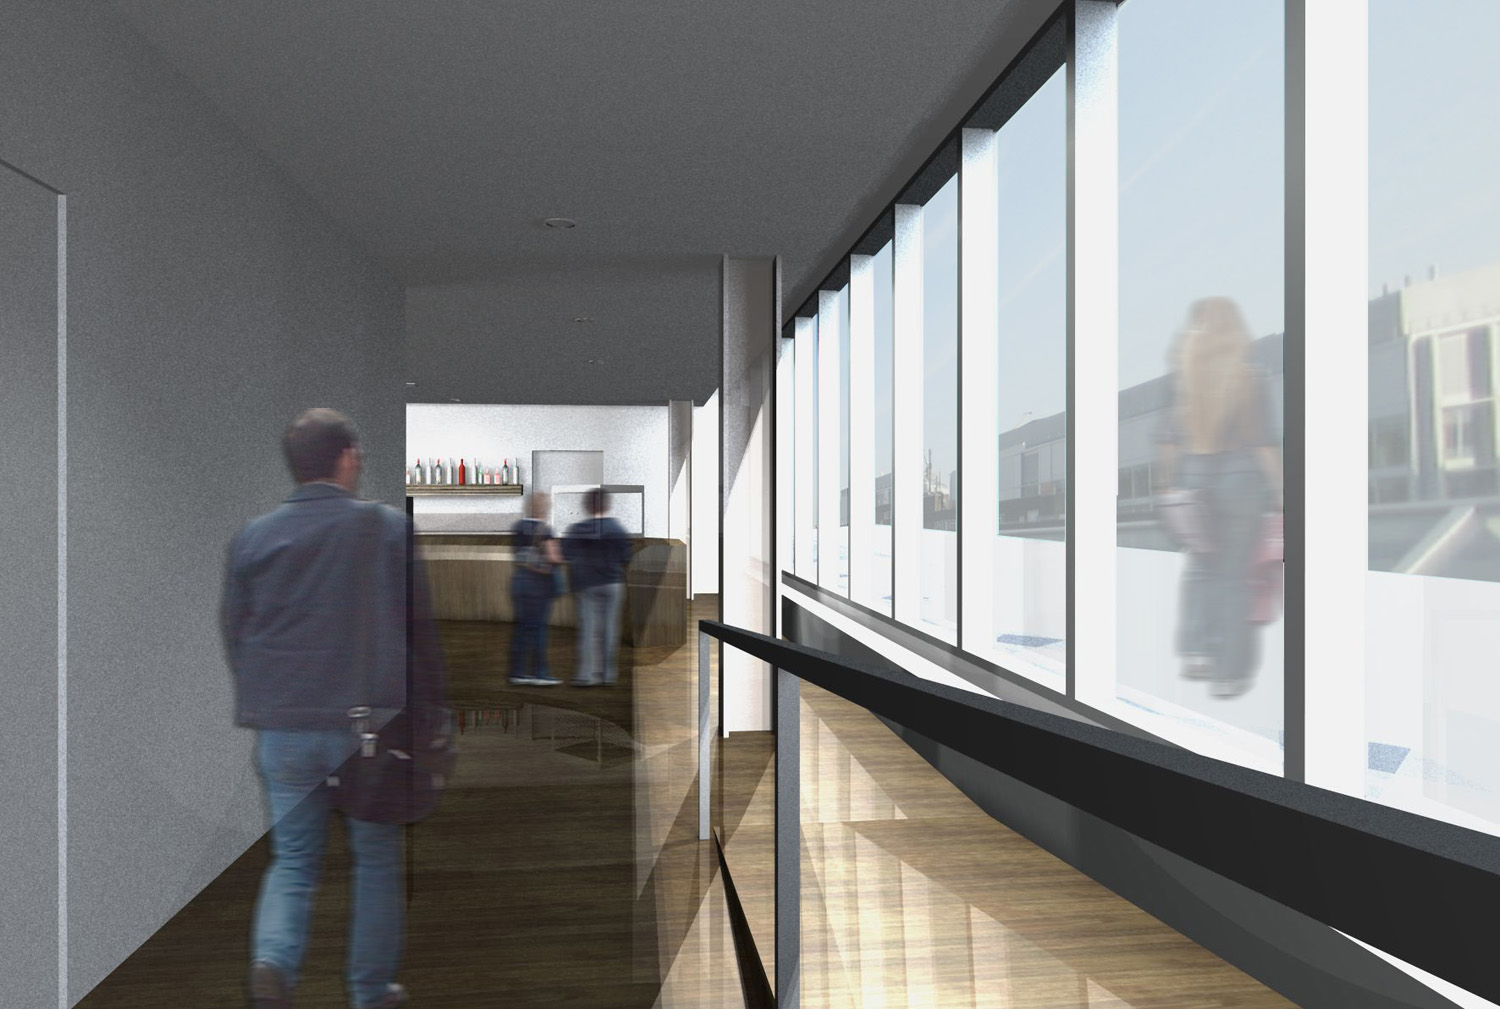 Tate L6 ds - north terrace view final 2 with people copy.jpg